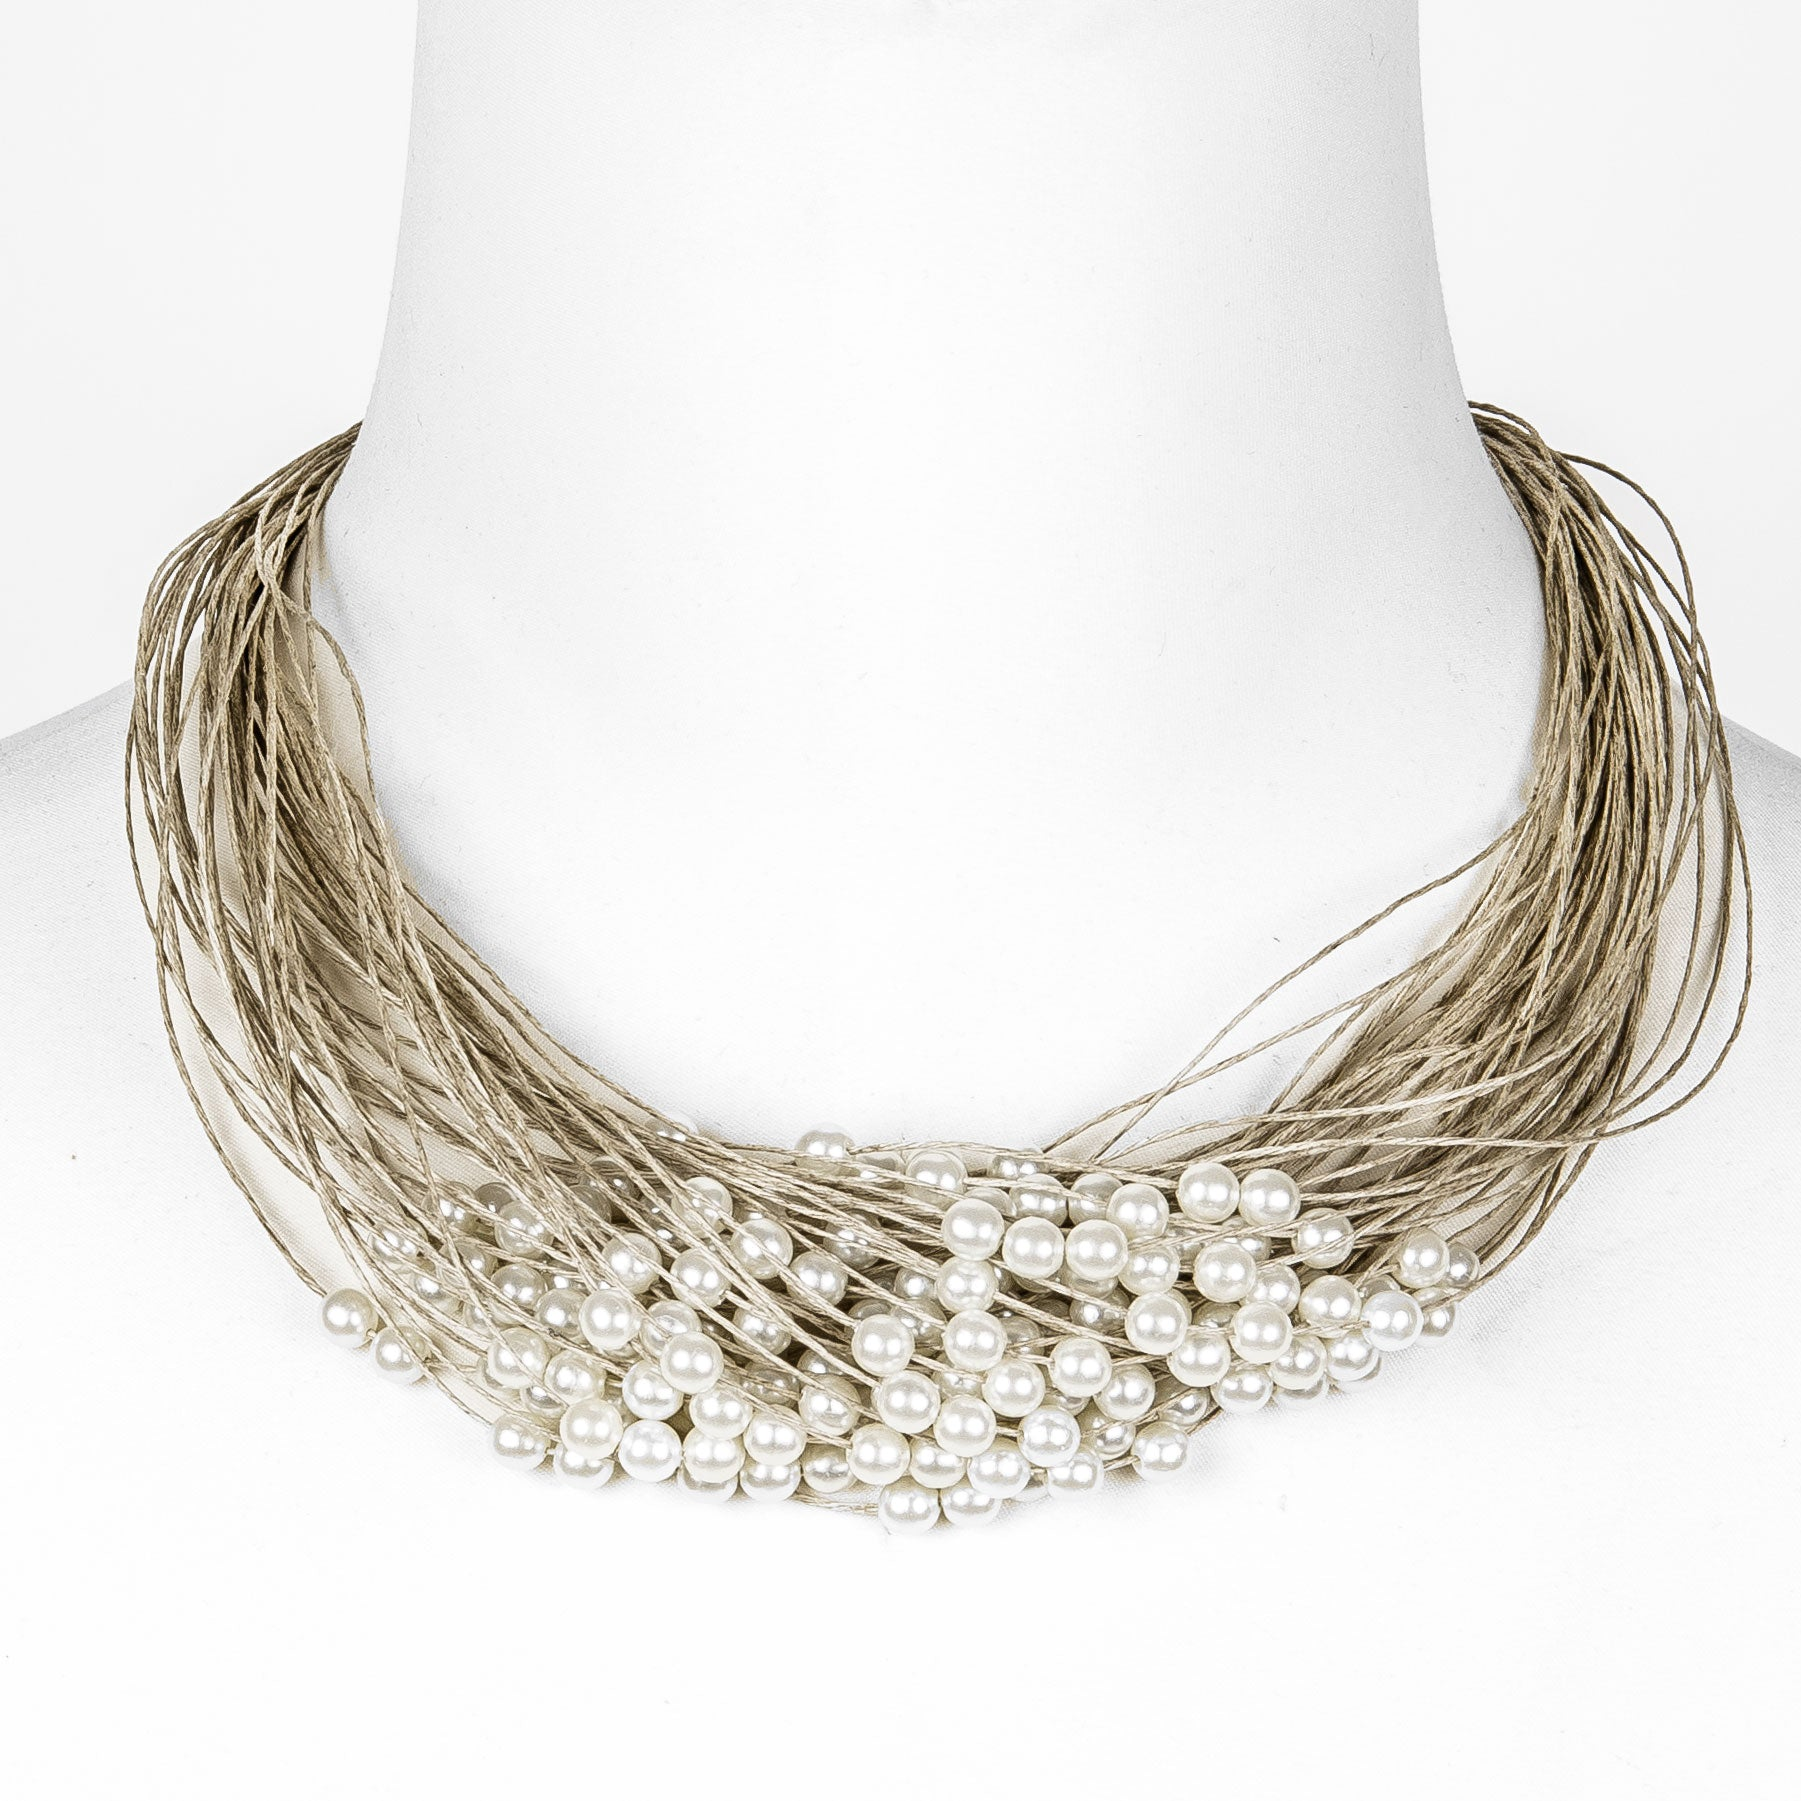 jo neckl big and necklace product web designer garnet on gold filled pearls jewellery chain cropped pearl